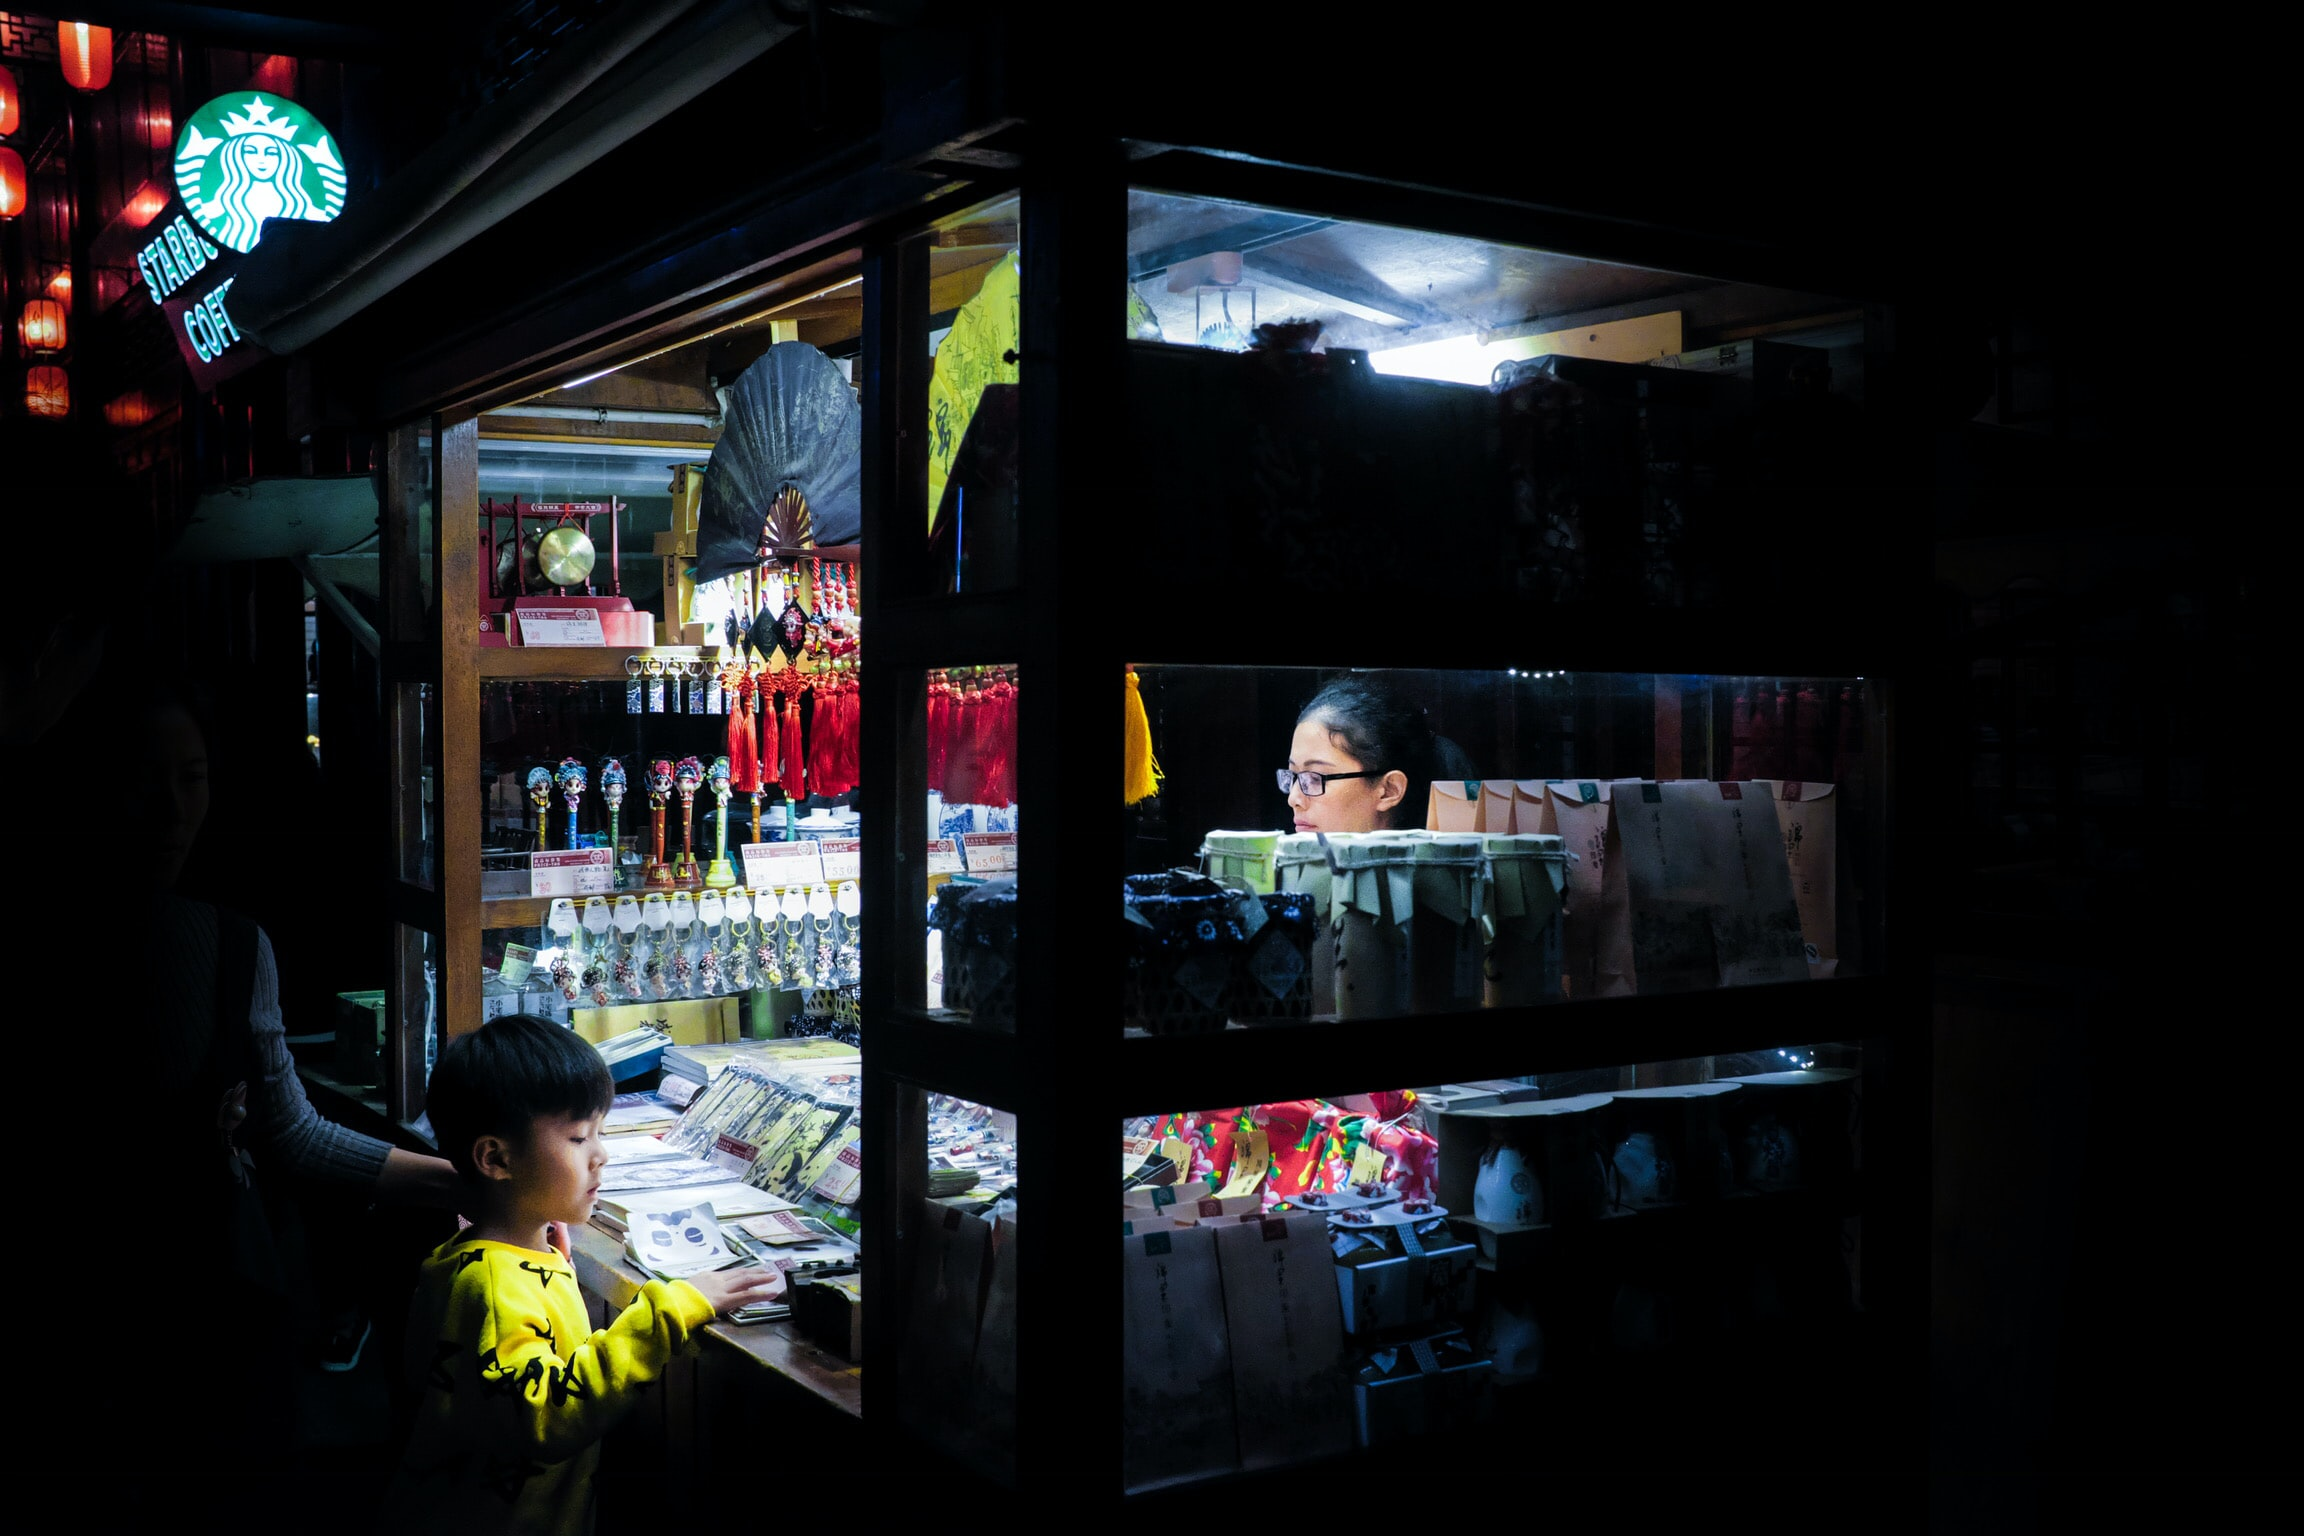 woman and boy in food stall at night time